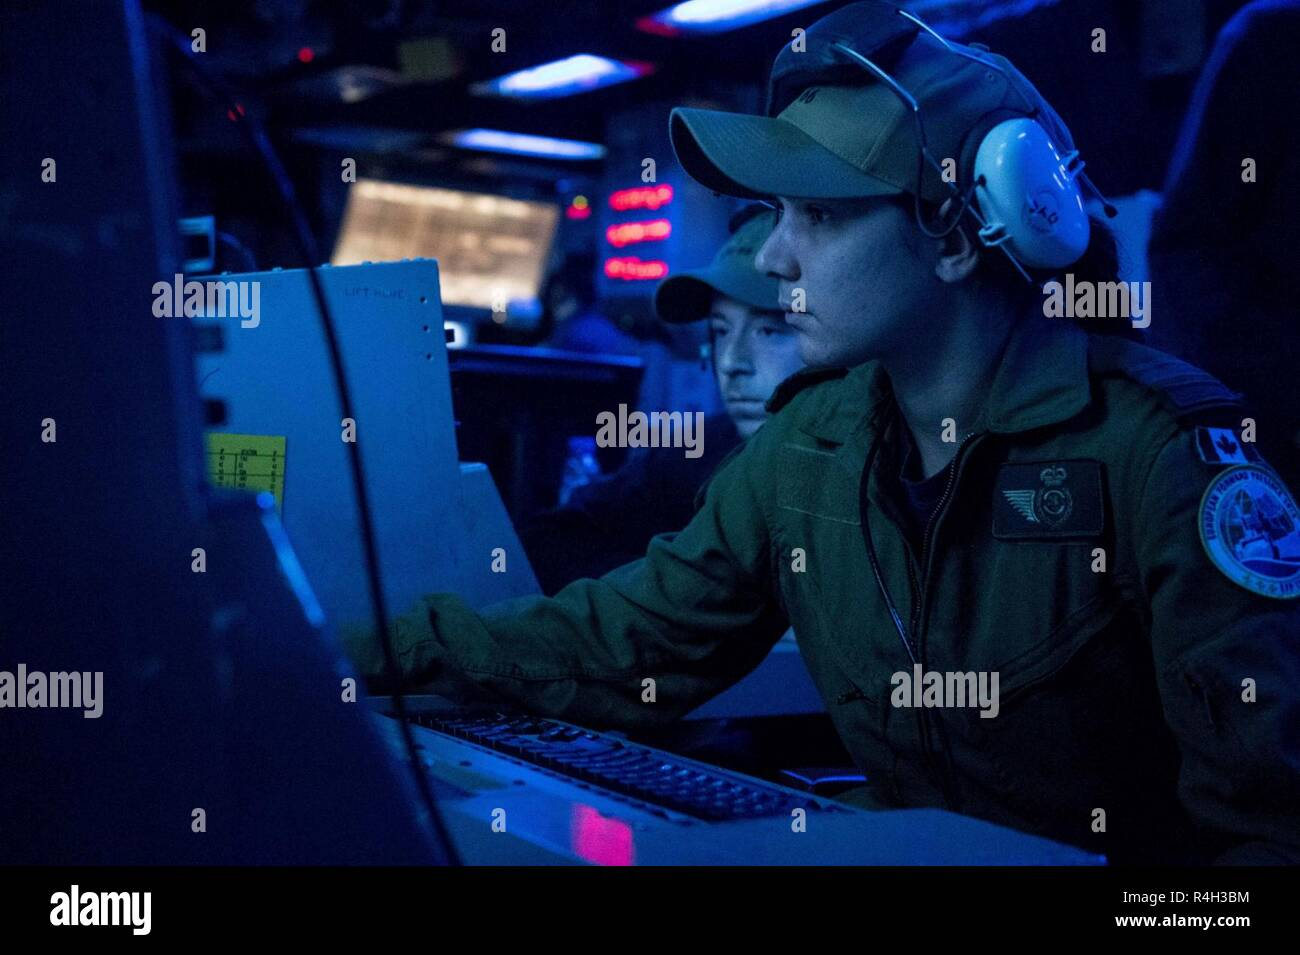 ATLANTIC OCEAN (Sept. 30, 2018) Royal Canadian Navy Lt. Ashley Zen (foreground) and U.S. Navy Operations Specialist 1st Class Jeremy Ables assist in an operations exercise aboard Ticonderoga-class guided-missile cruiser USS Hue City (CG 66). Hue City is currently underway on a regularly scheduled deployment. - Stock Image